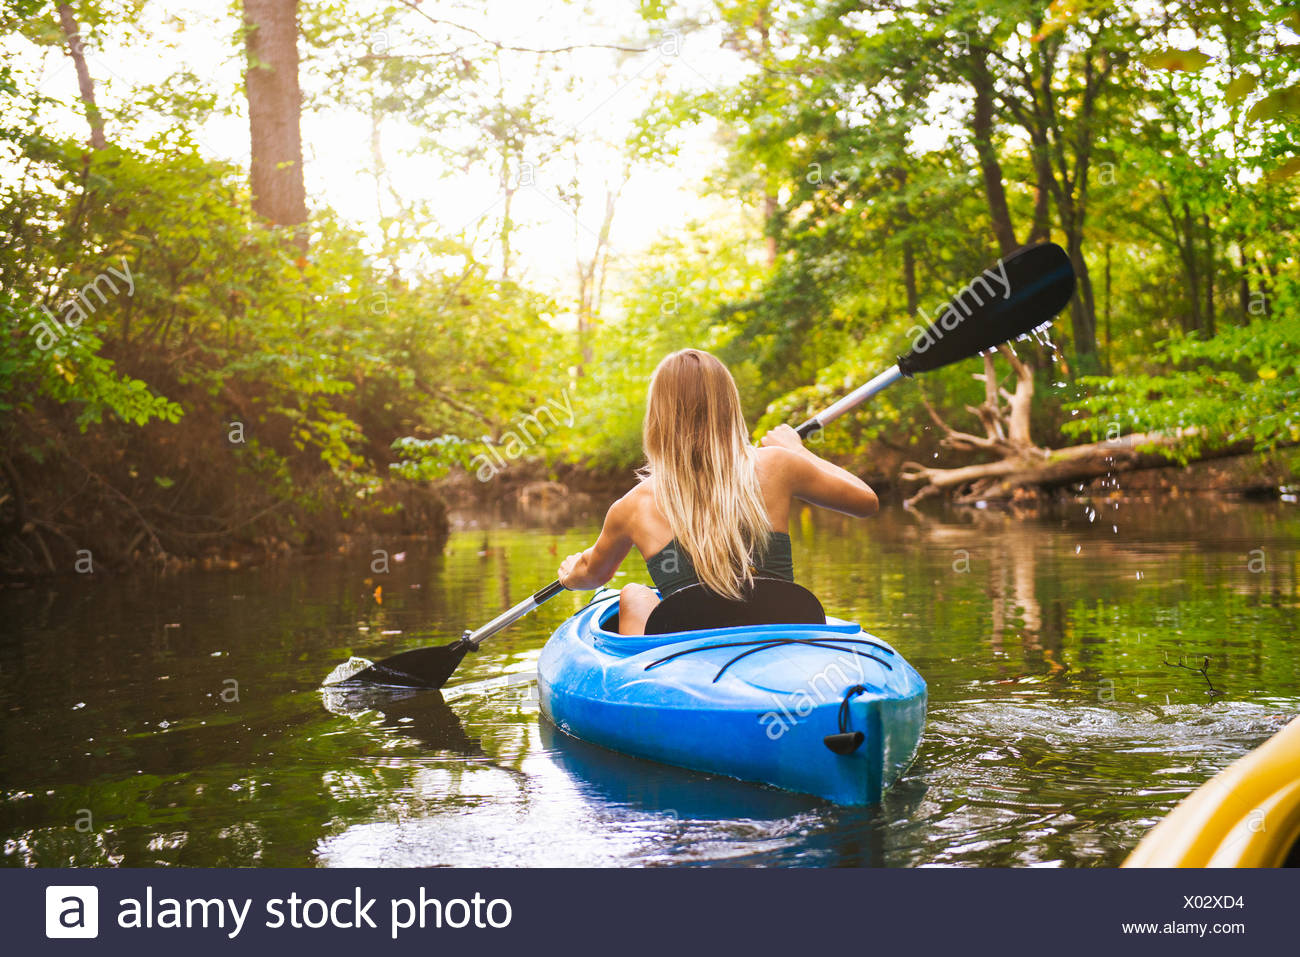 Rear view of young woman kayaking on forest river, Cary, North Carolina, USA - Stock Image